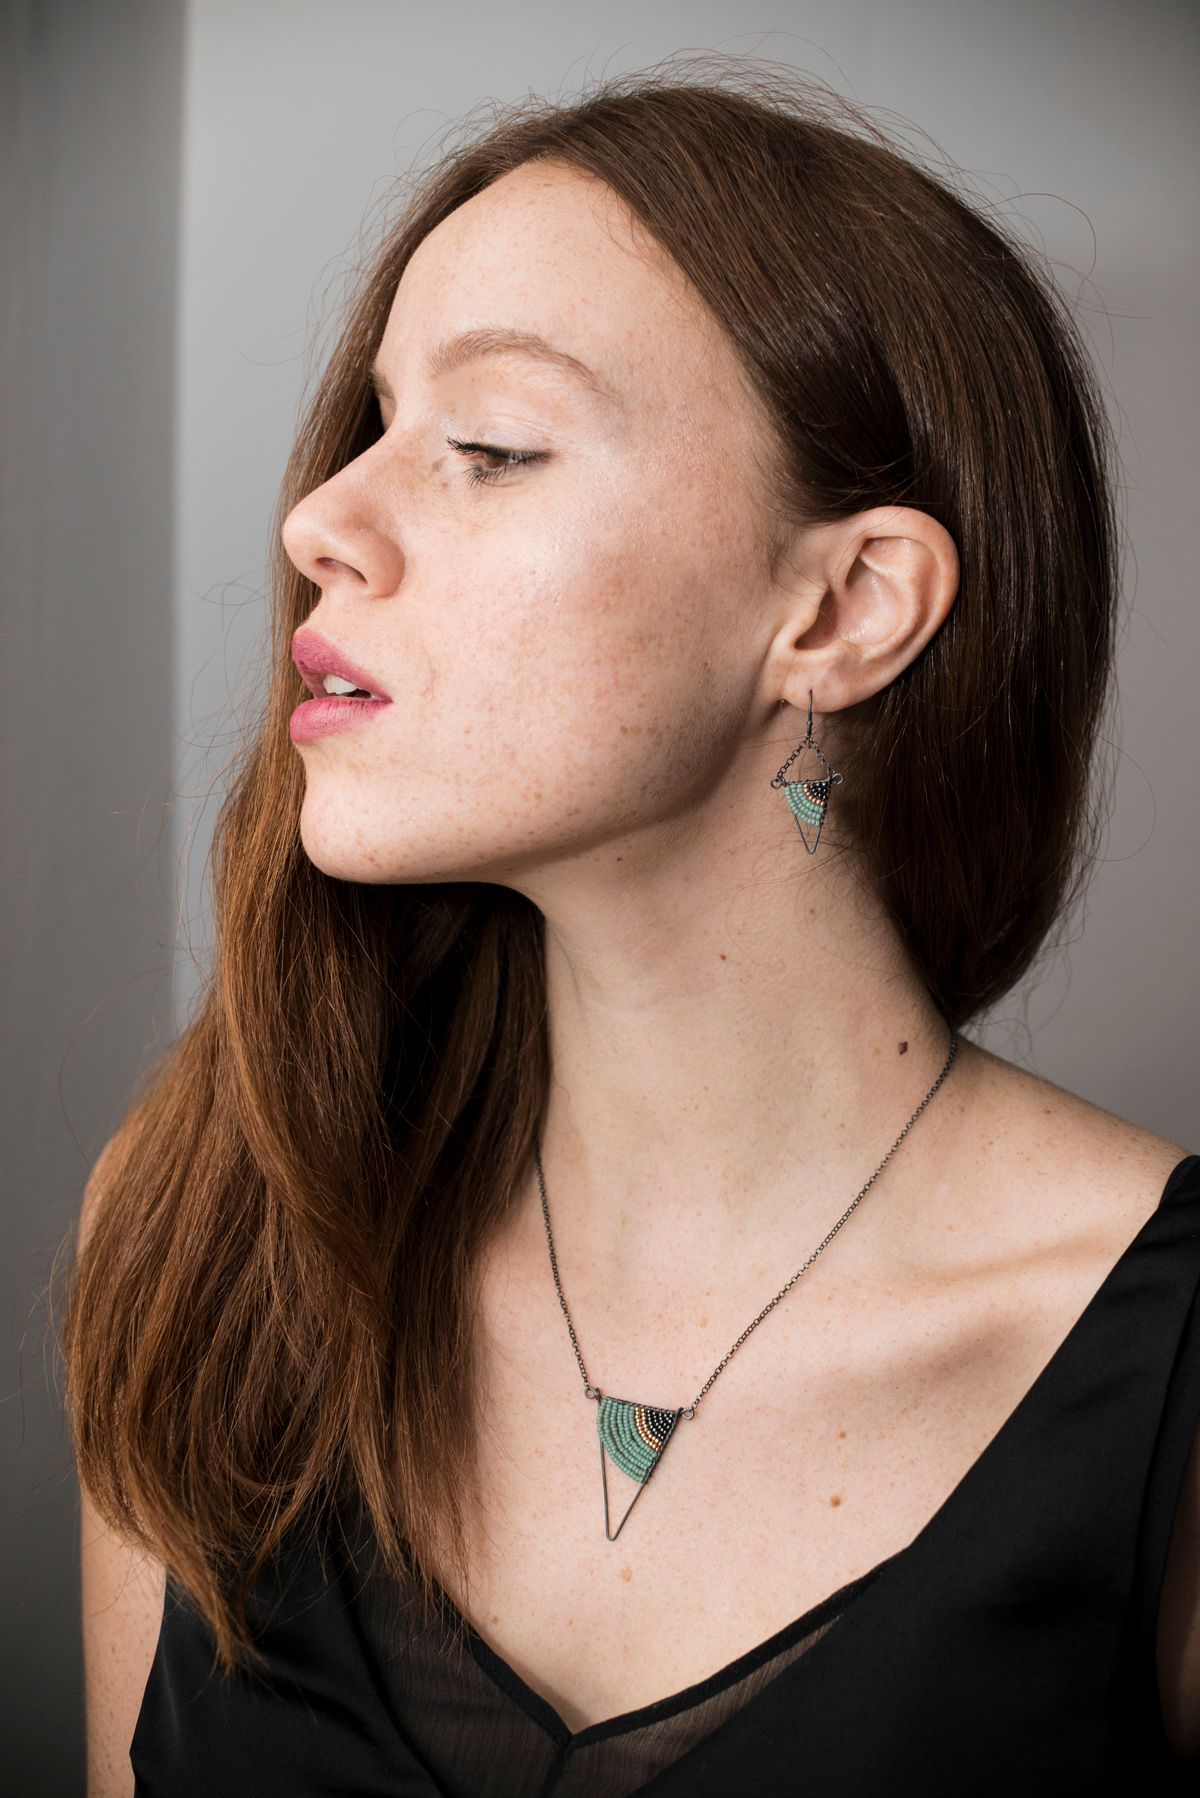 Triagnle necklace by Judith Brown Jewellery